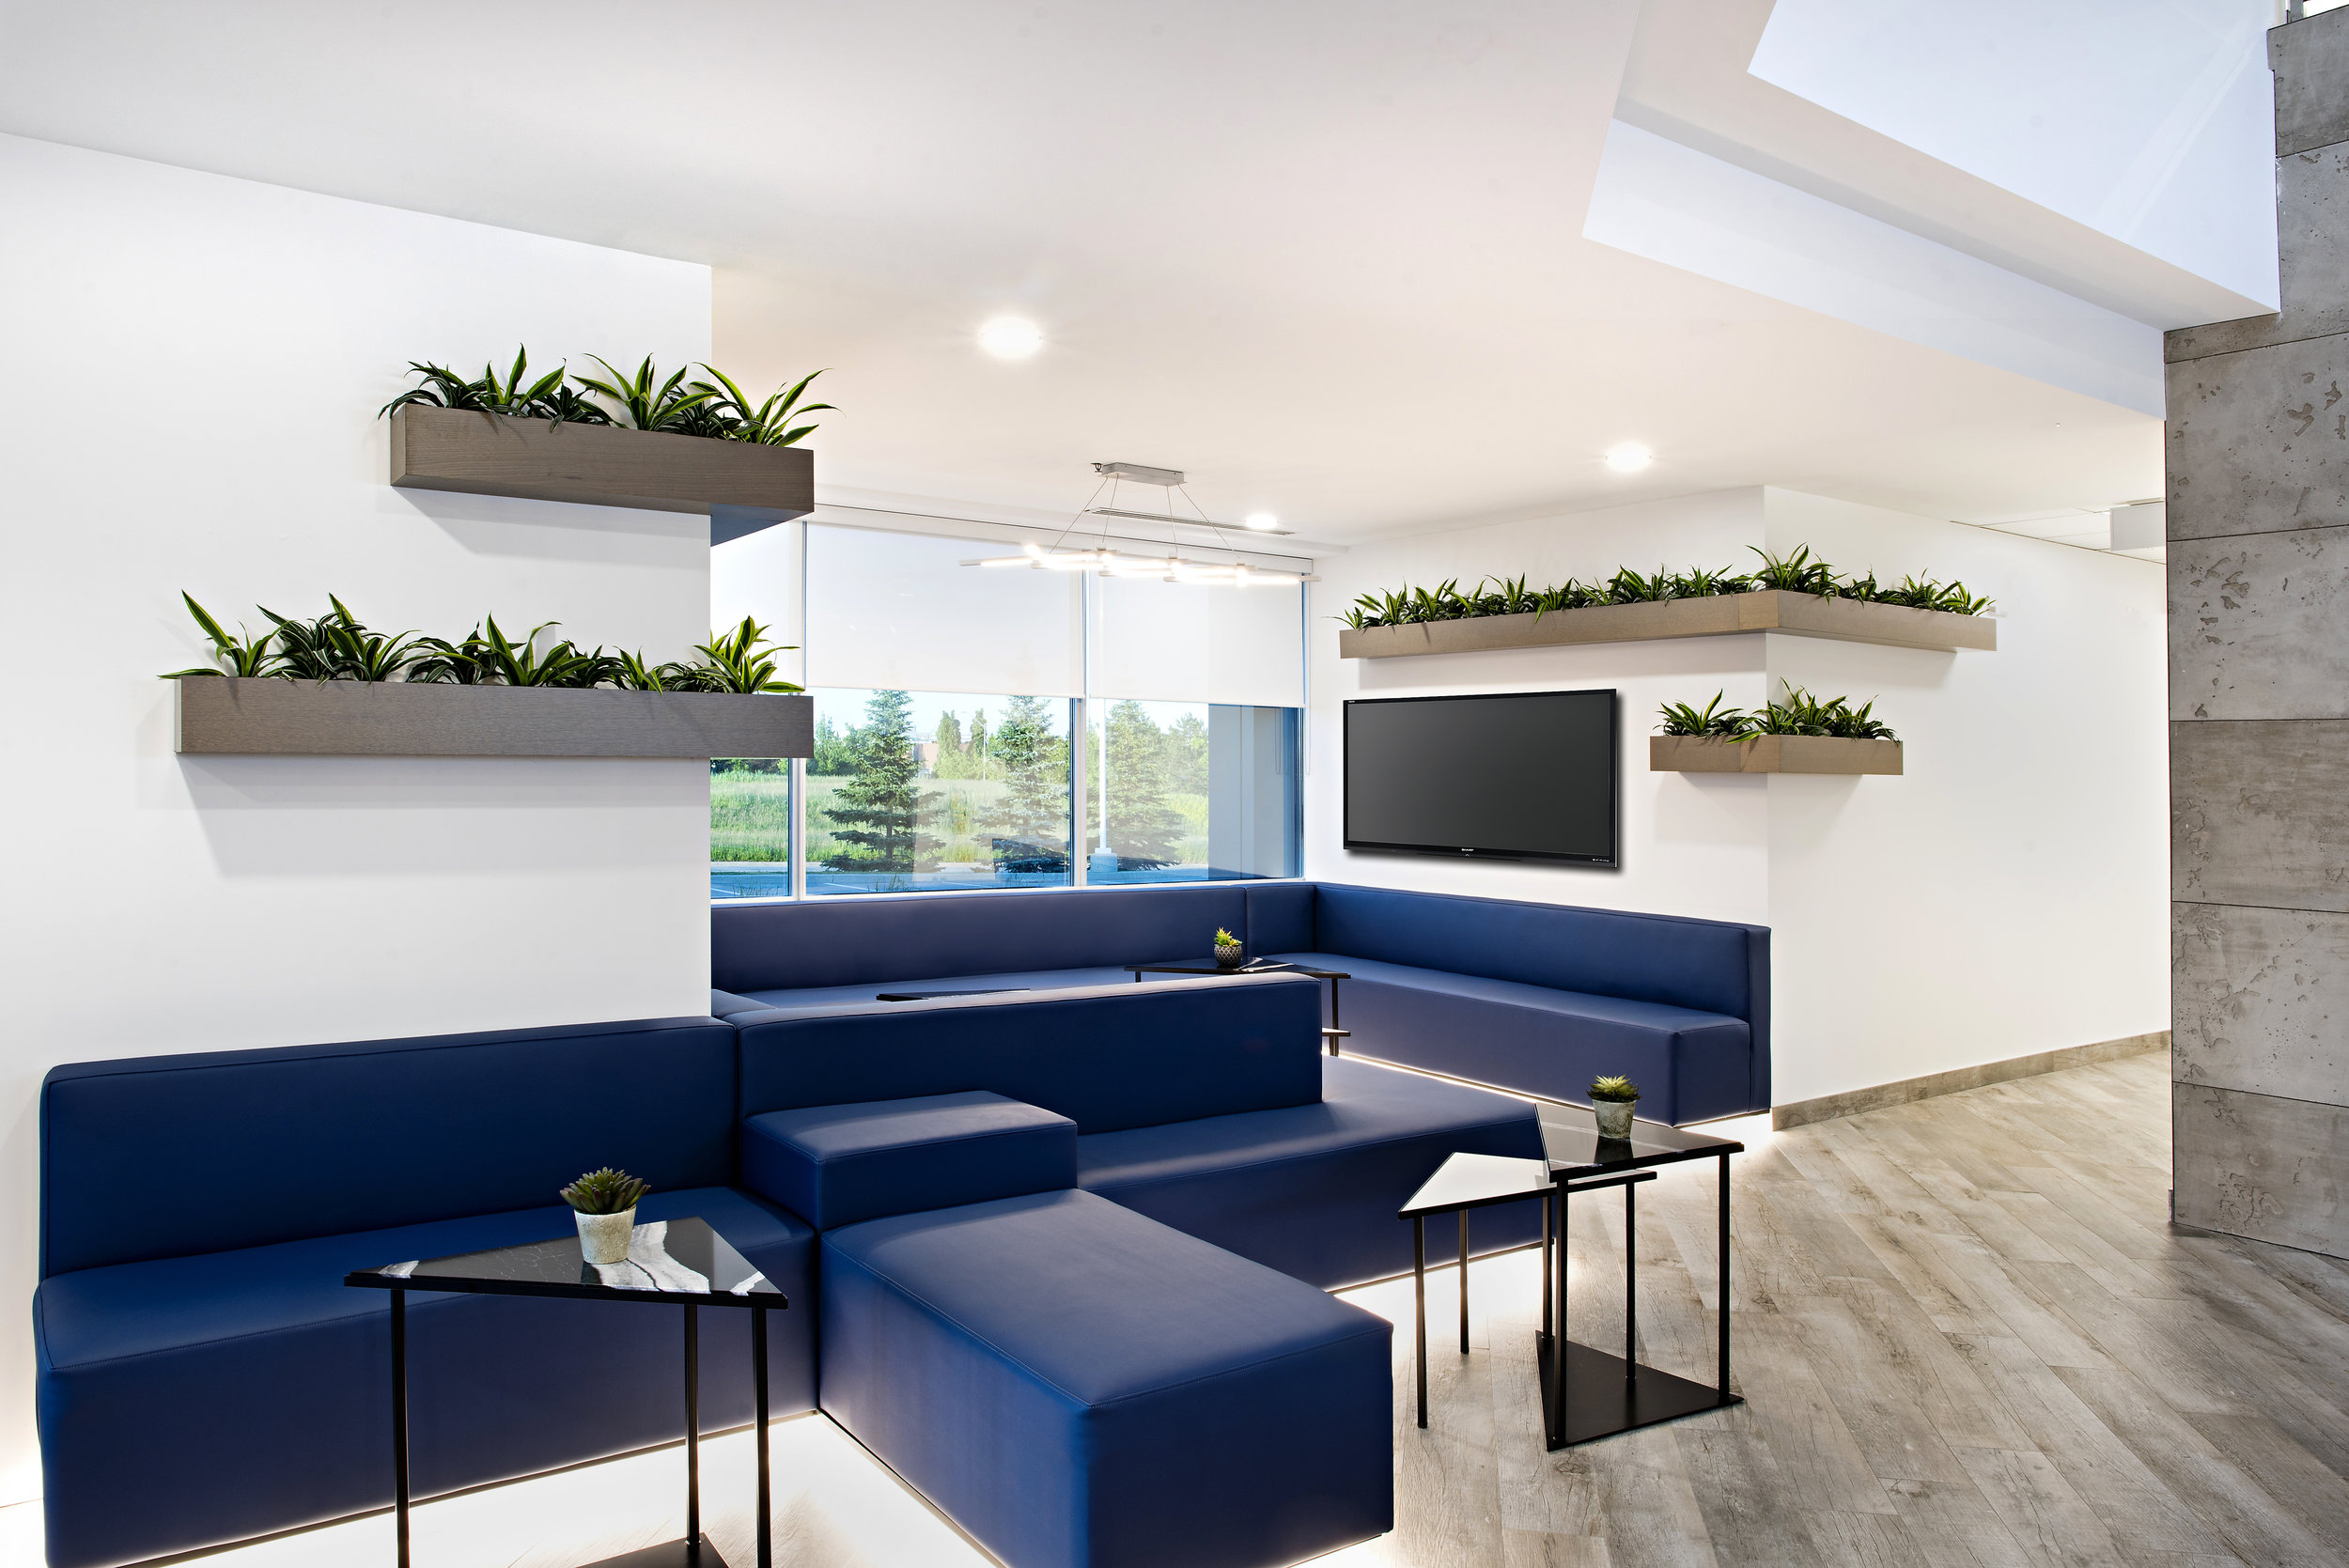 2design intrerior design commercial office space reception banquette seating navy blue vinyl led lighting stained white oak self watering planter white roller blind concrete wall tile grey laminate flooring custom metal and quartz nesting table.jpg